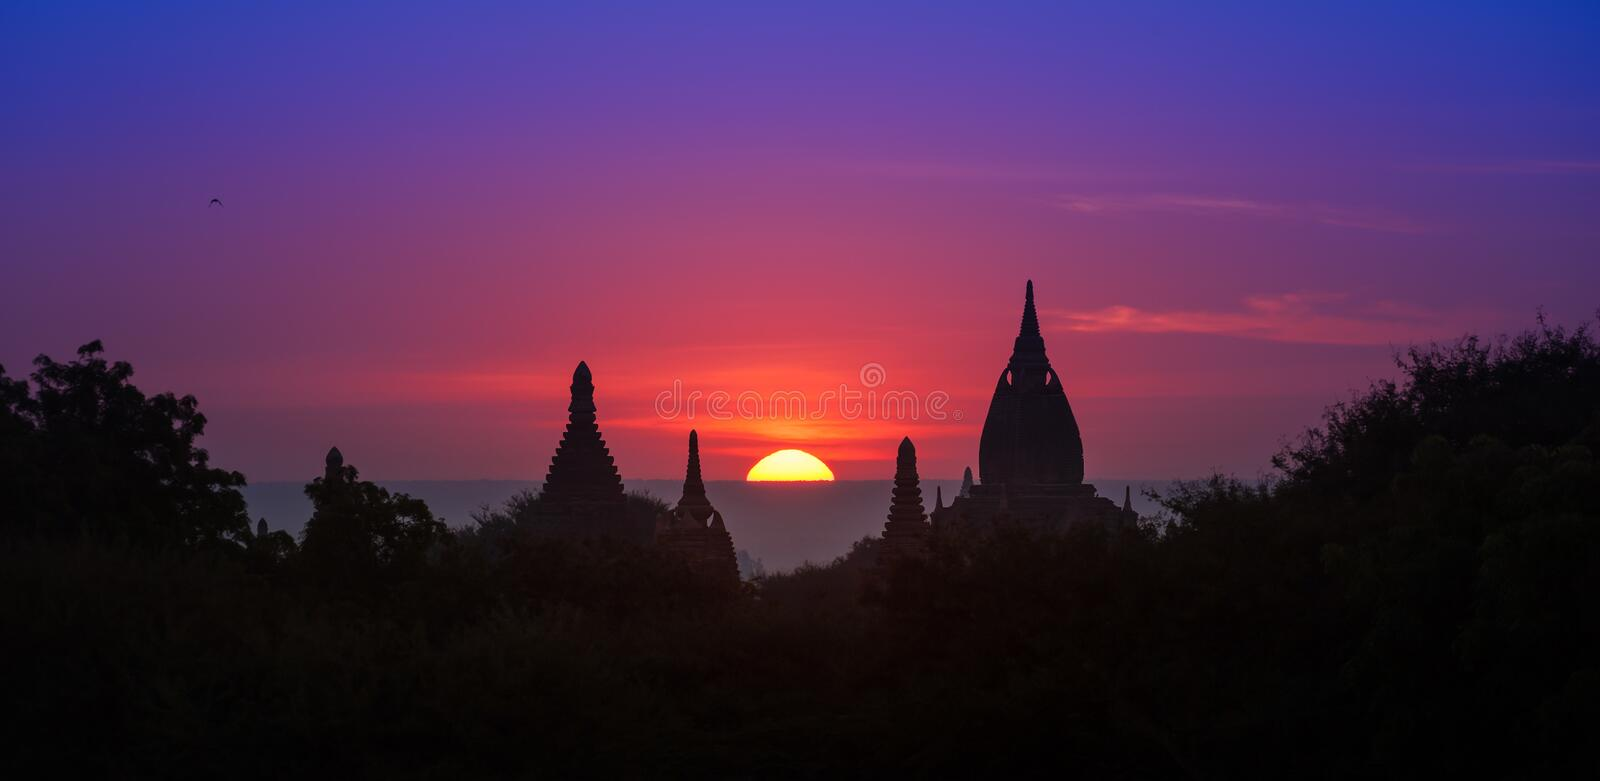 Ancient historical site Bagan in Myanmar at majestic sunset royalty free stock photos